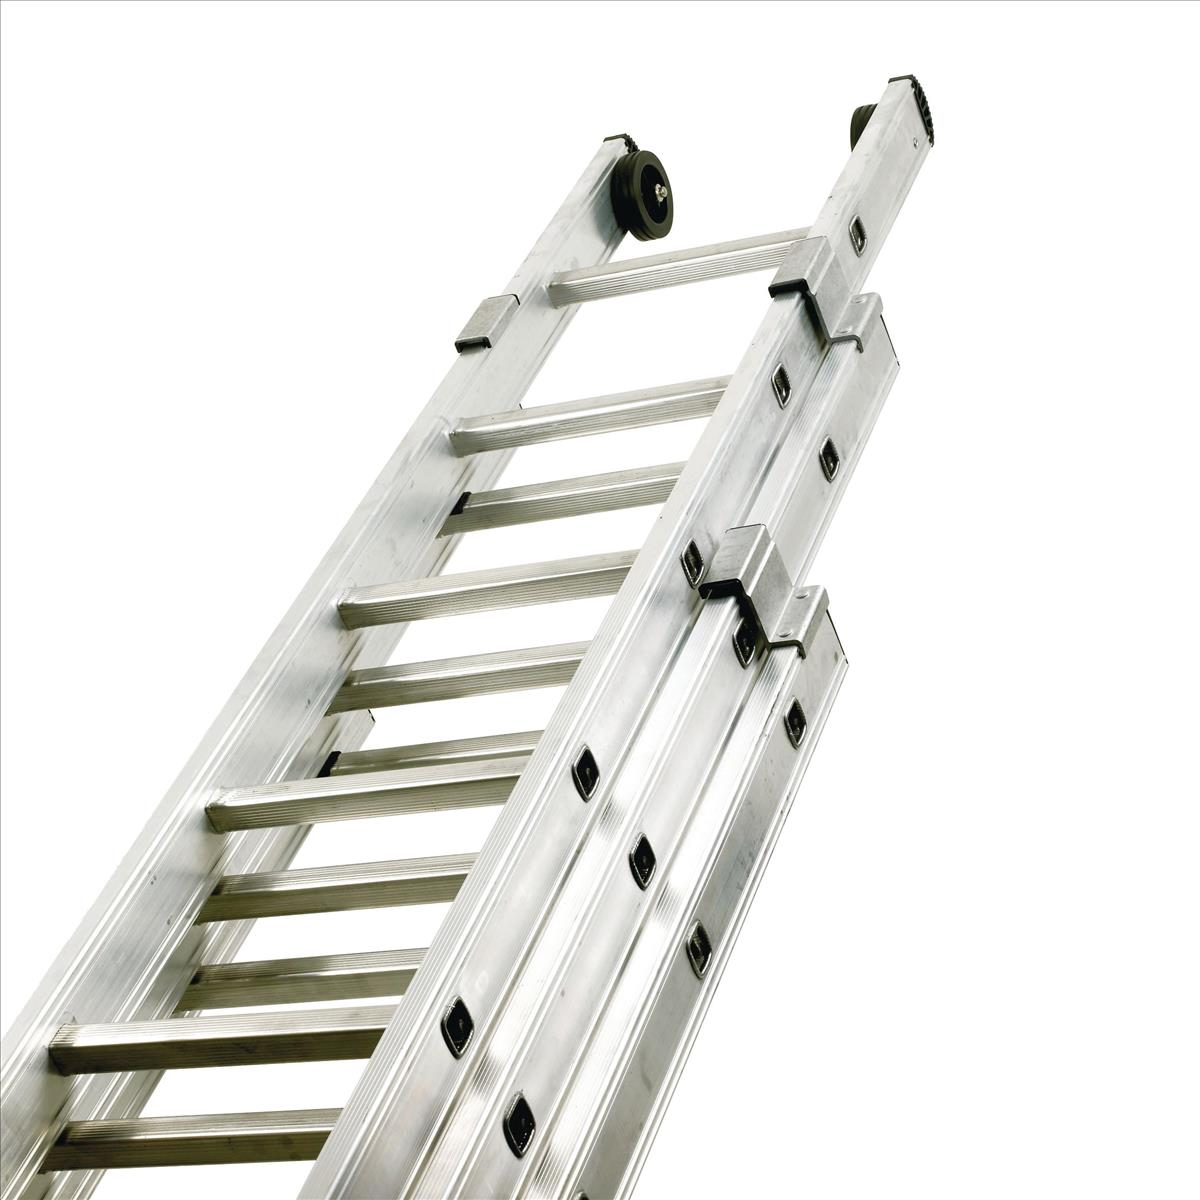 Image for Aluminium Push Up Ladder 3 Section Rungs 3x12